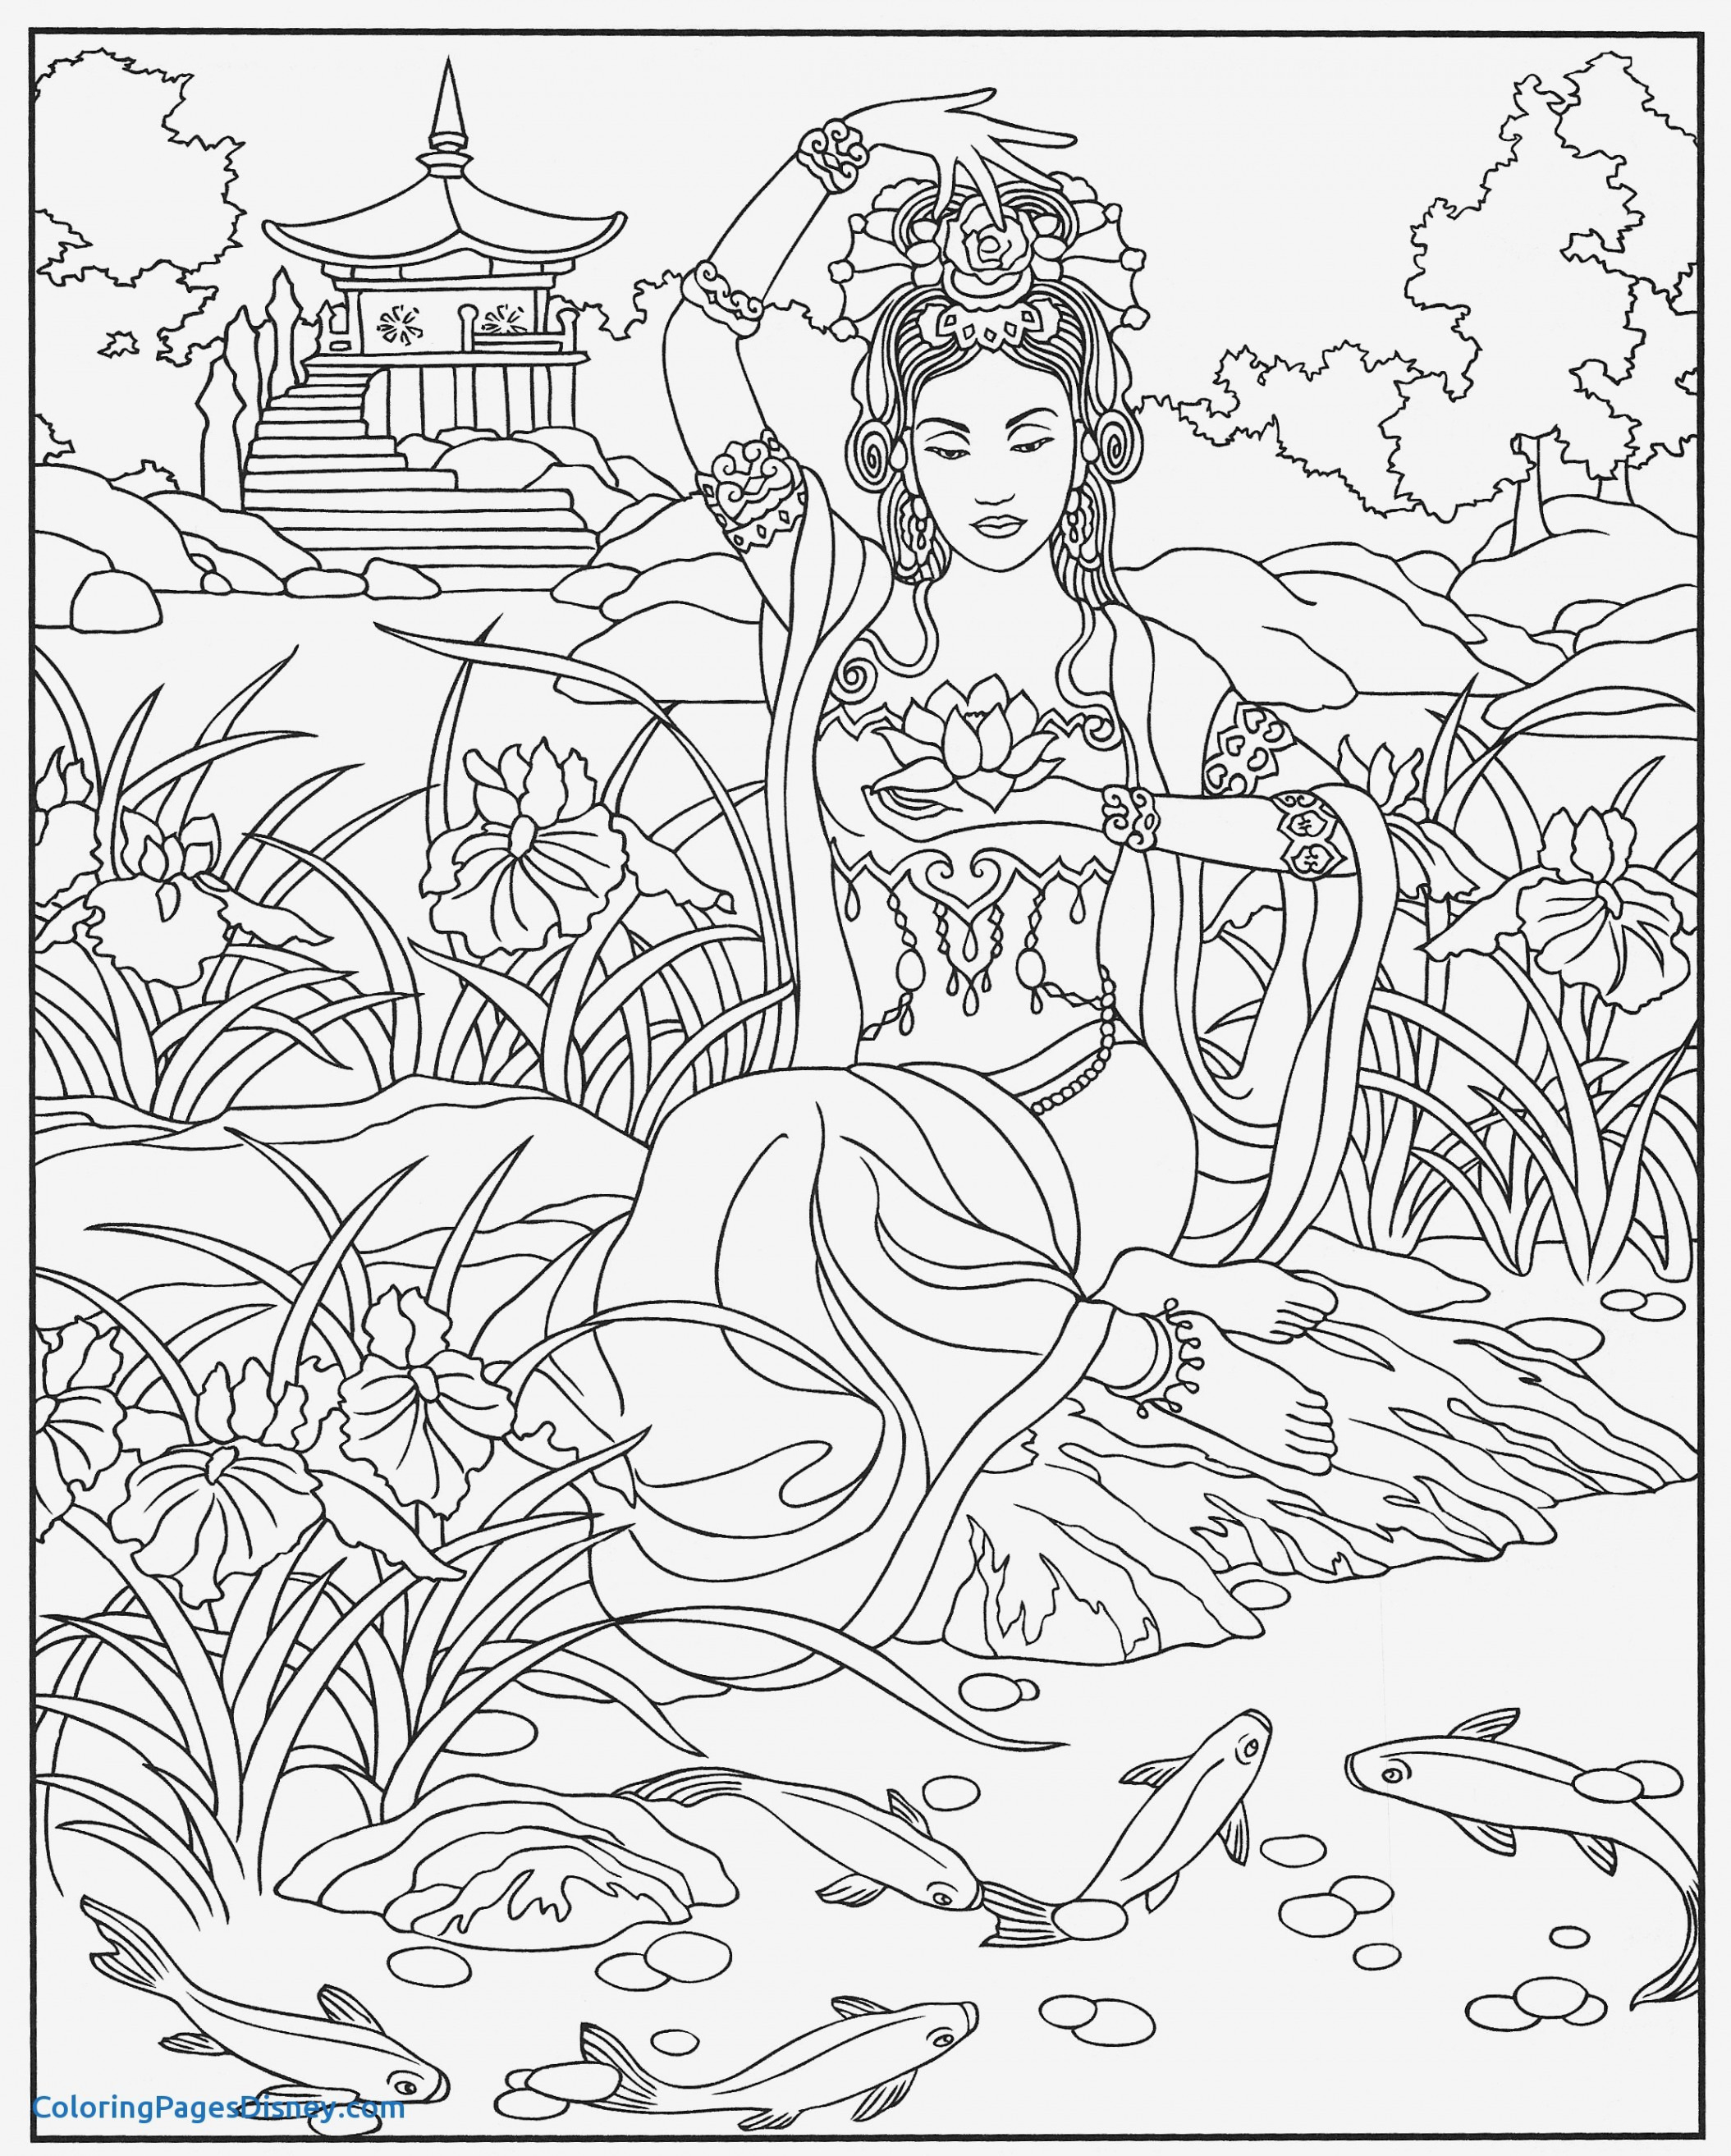 Coloring Pages Women  Download 17g - To print for your project